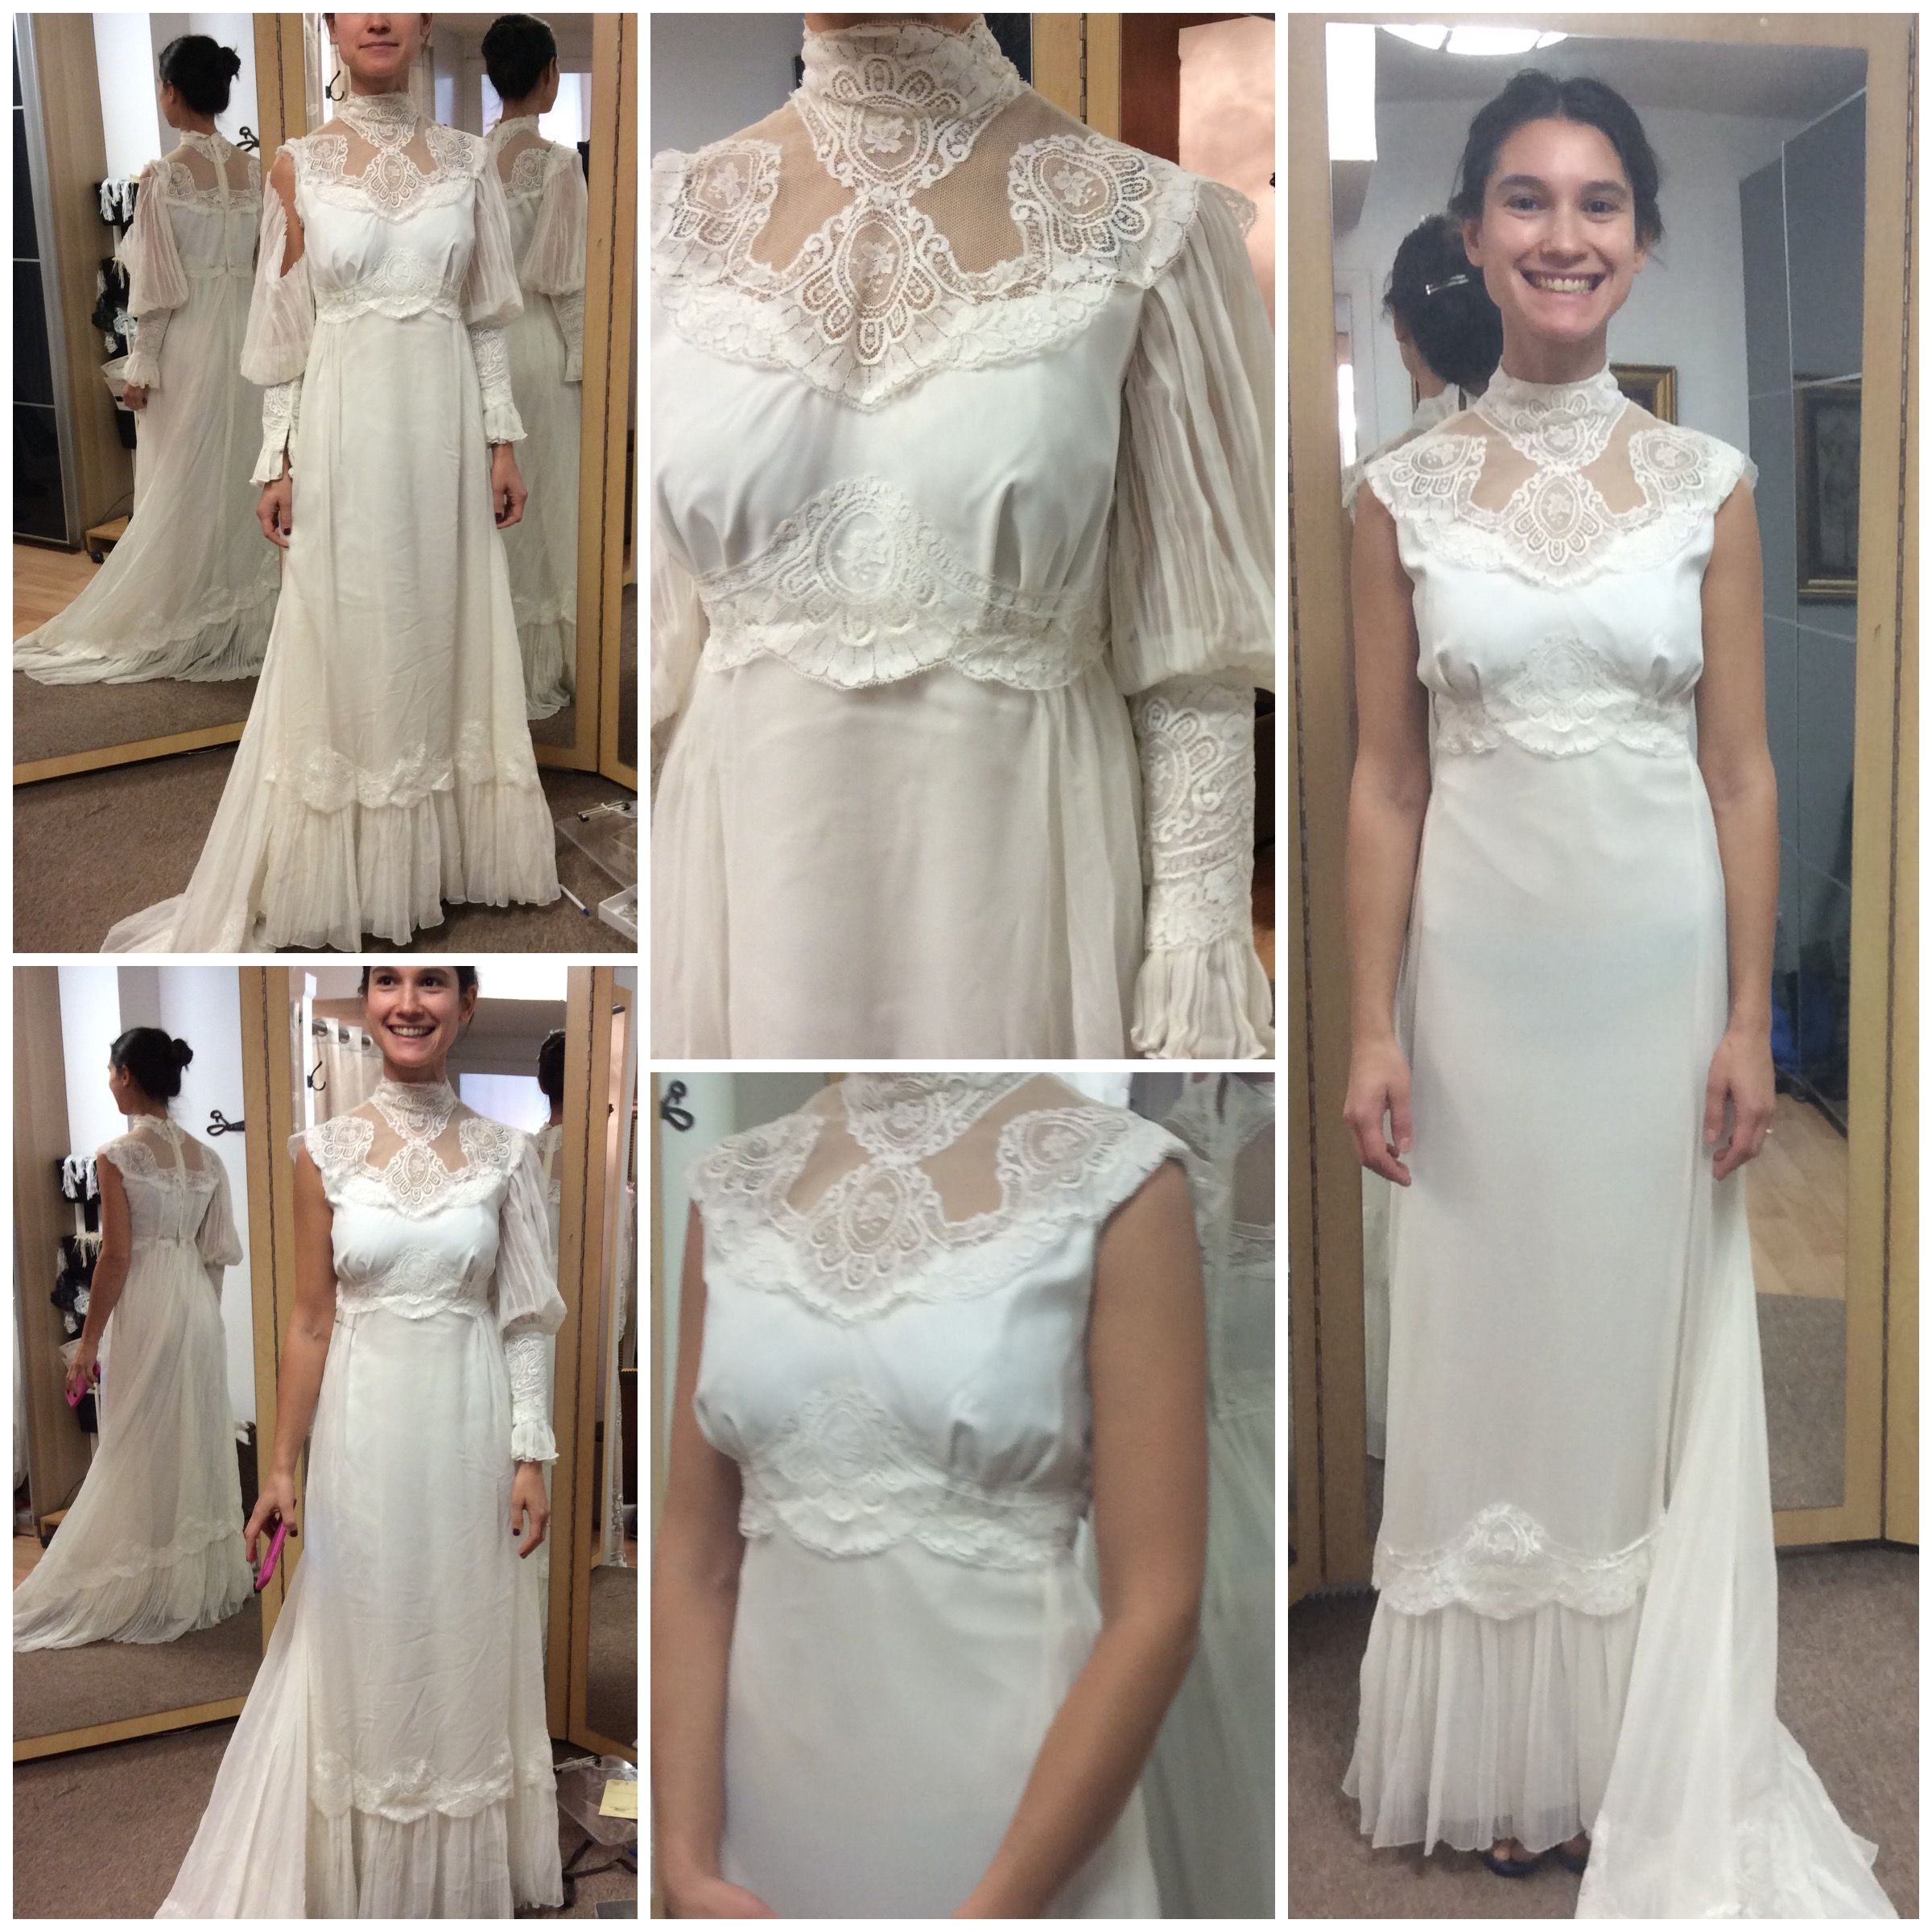 Mother's Wedding Dress